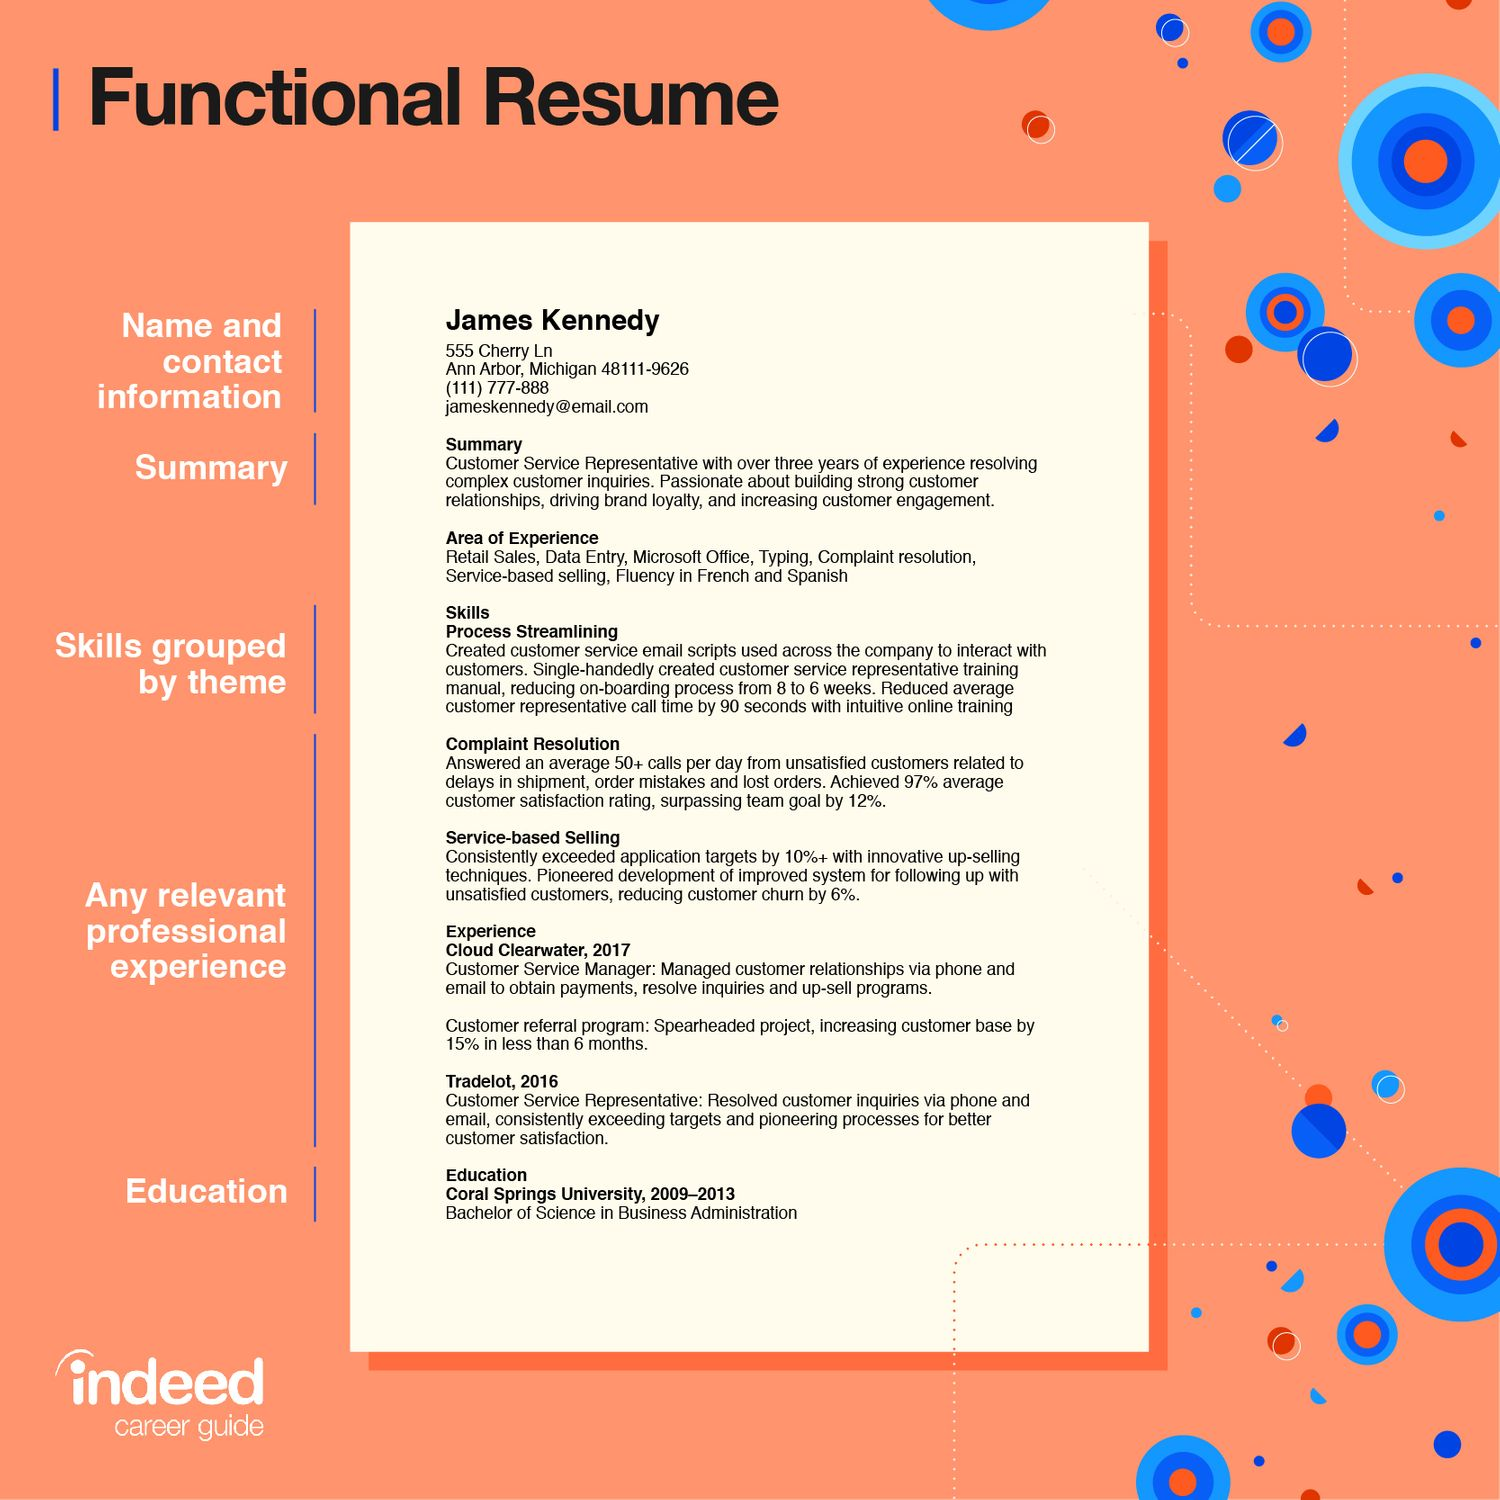 10 Best Skills To Include On A Resume With Examples Indeed Com